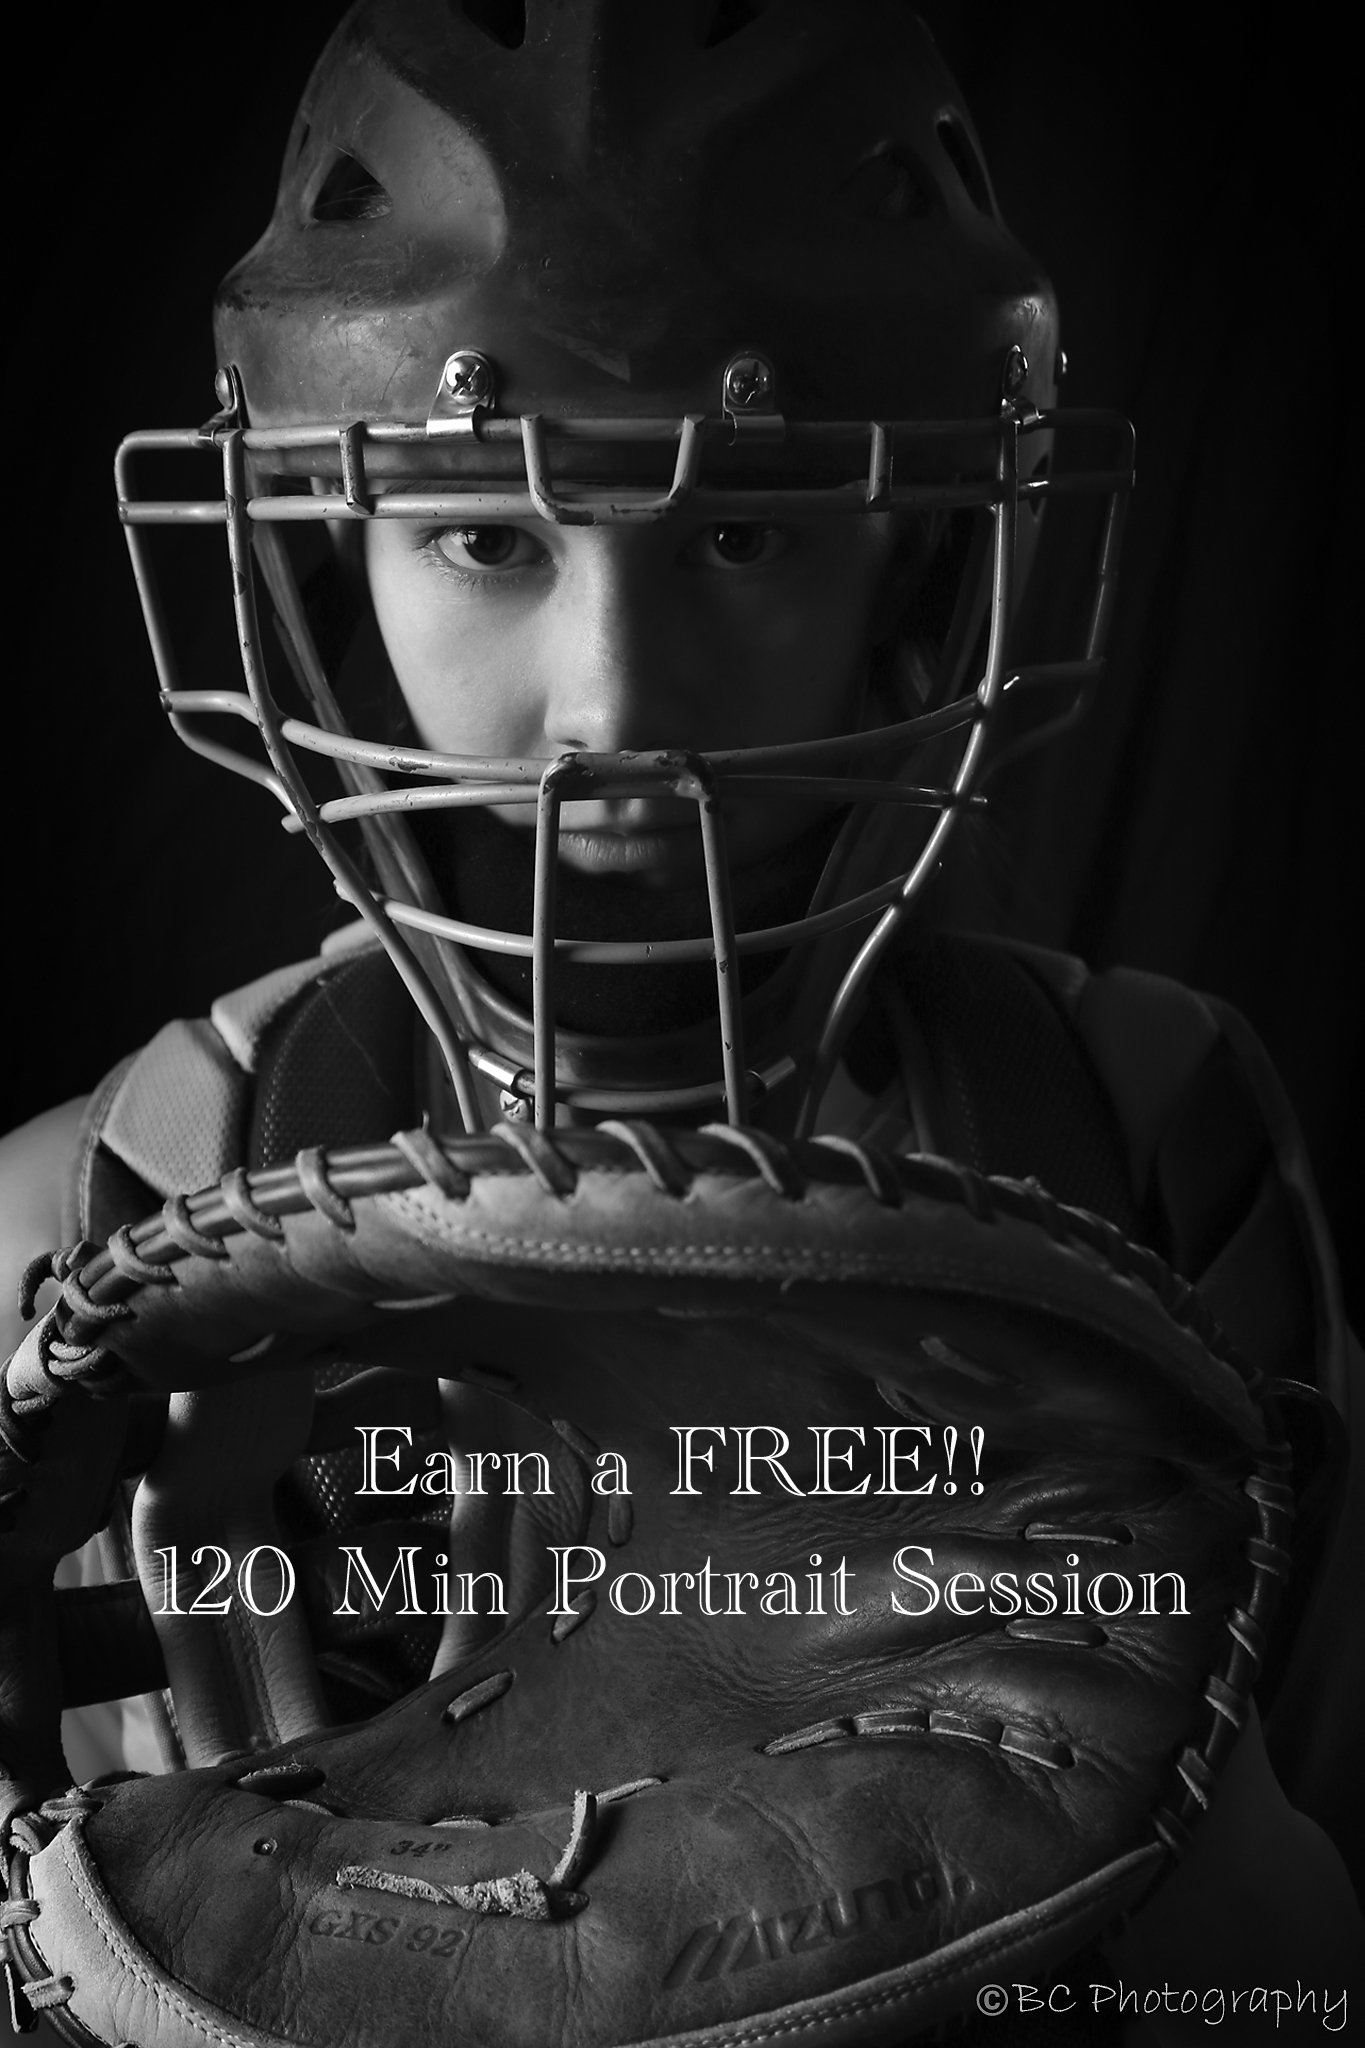 Show off - Utilize the great tools I will provide to show off you portraits